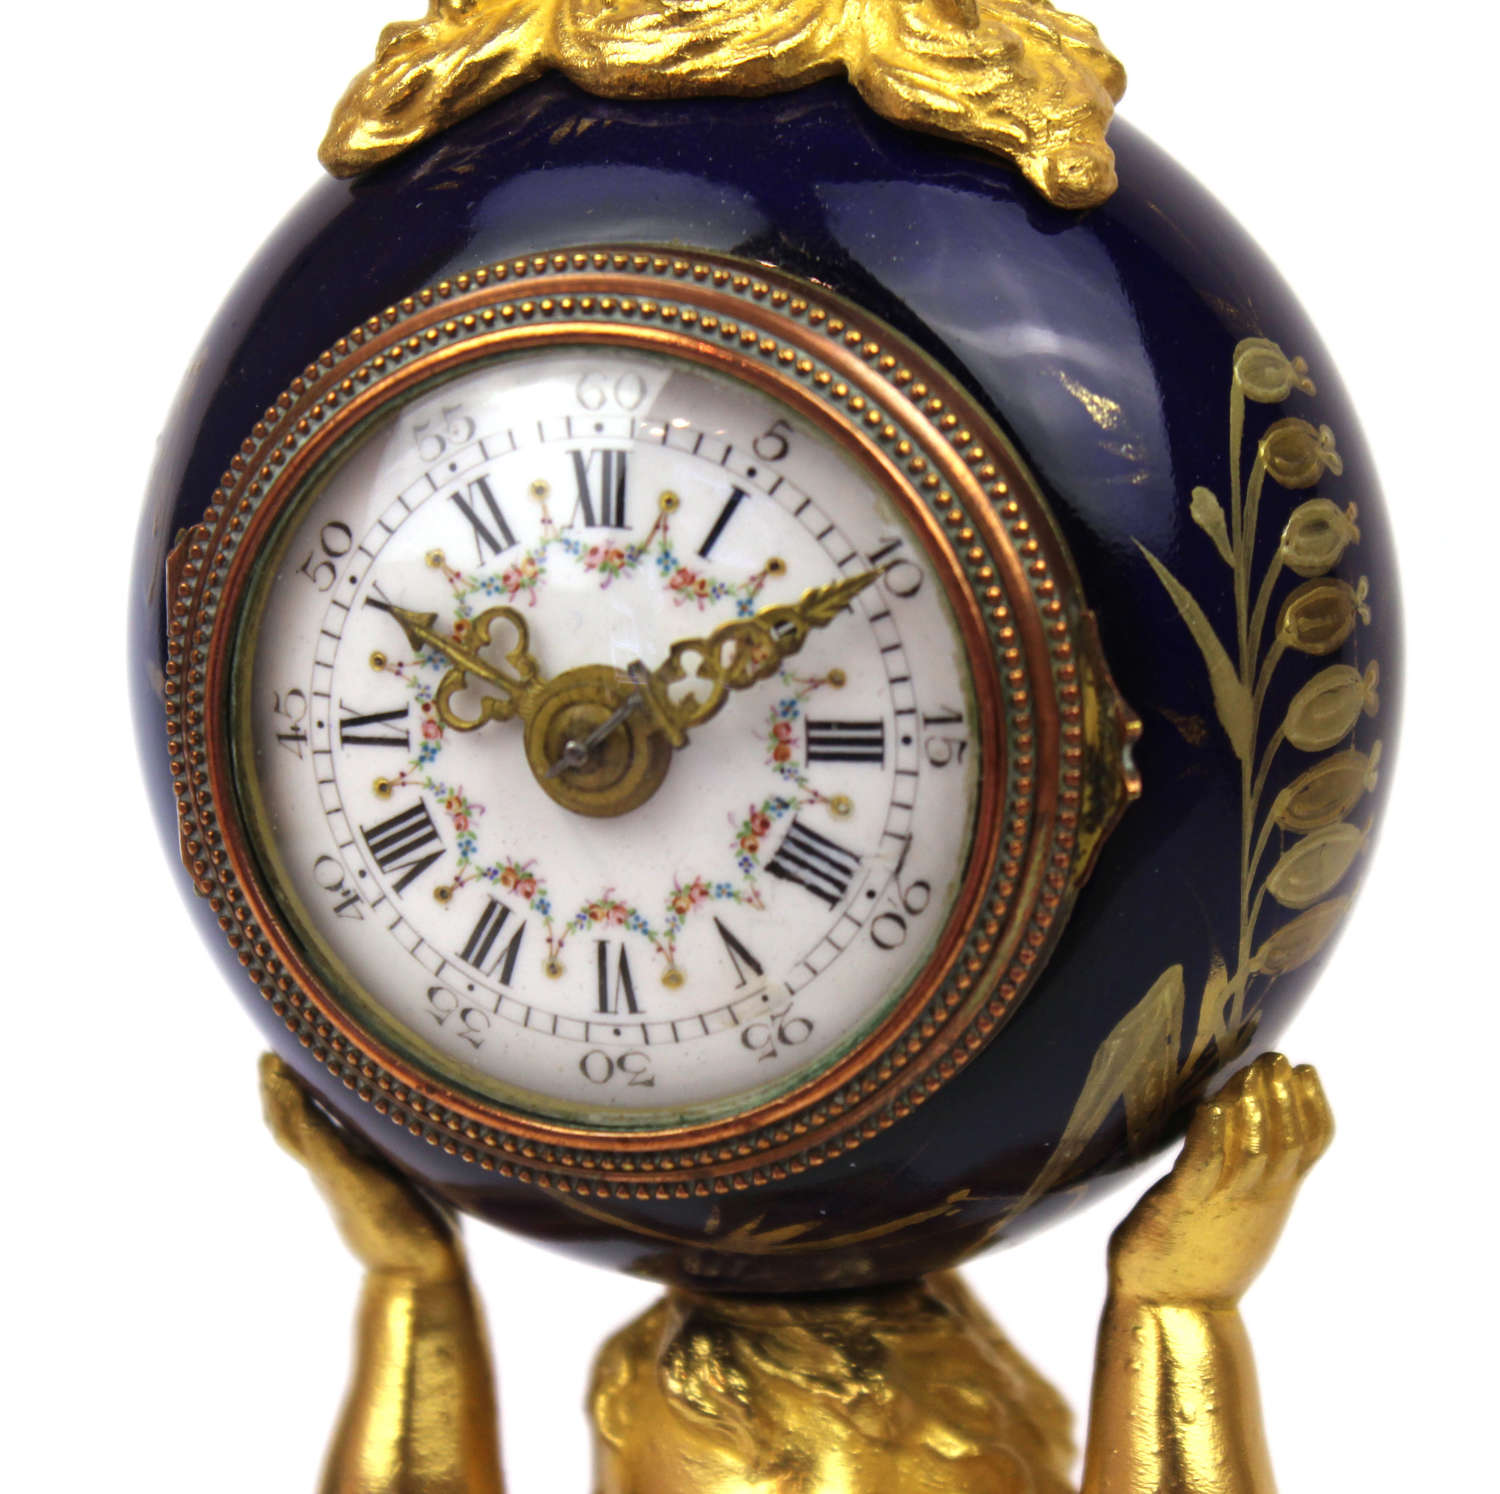 A 19th c. Cherub mantel clock